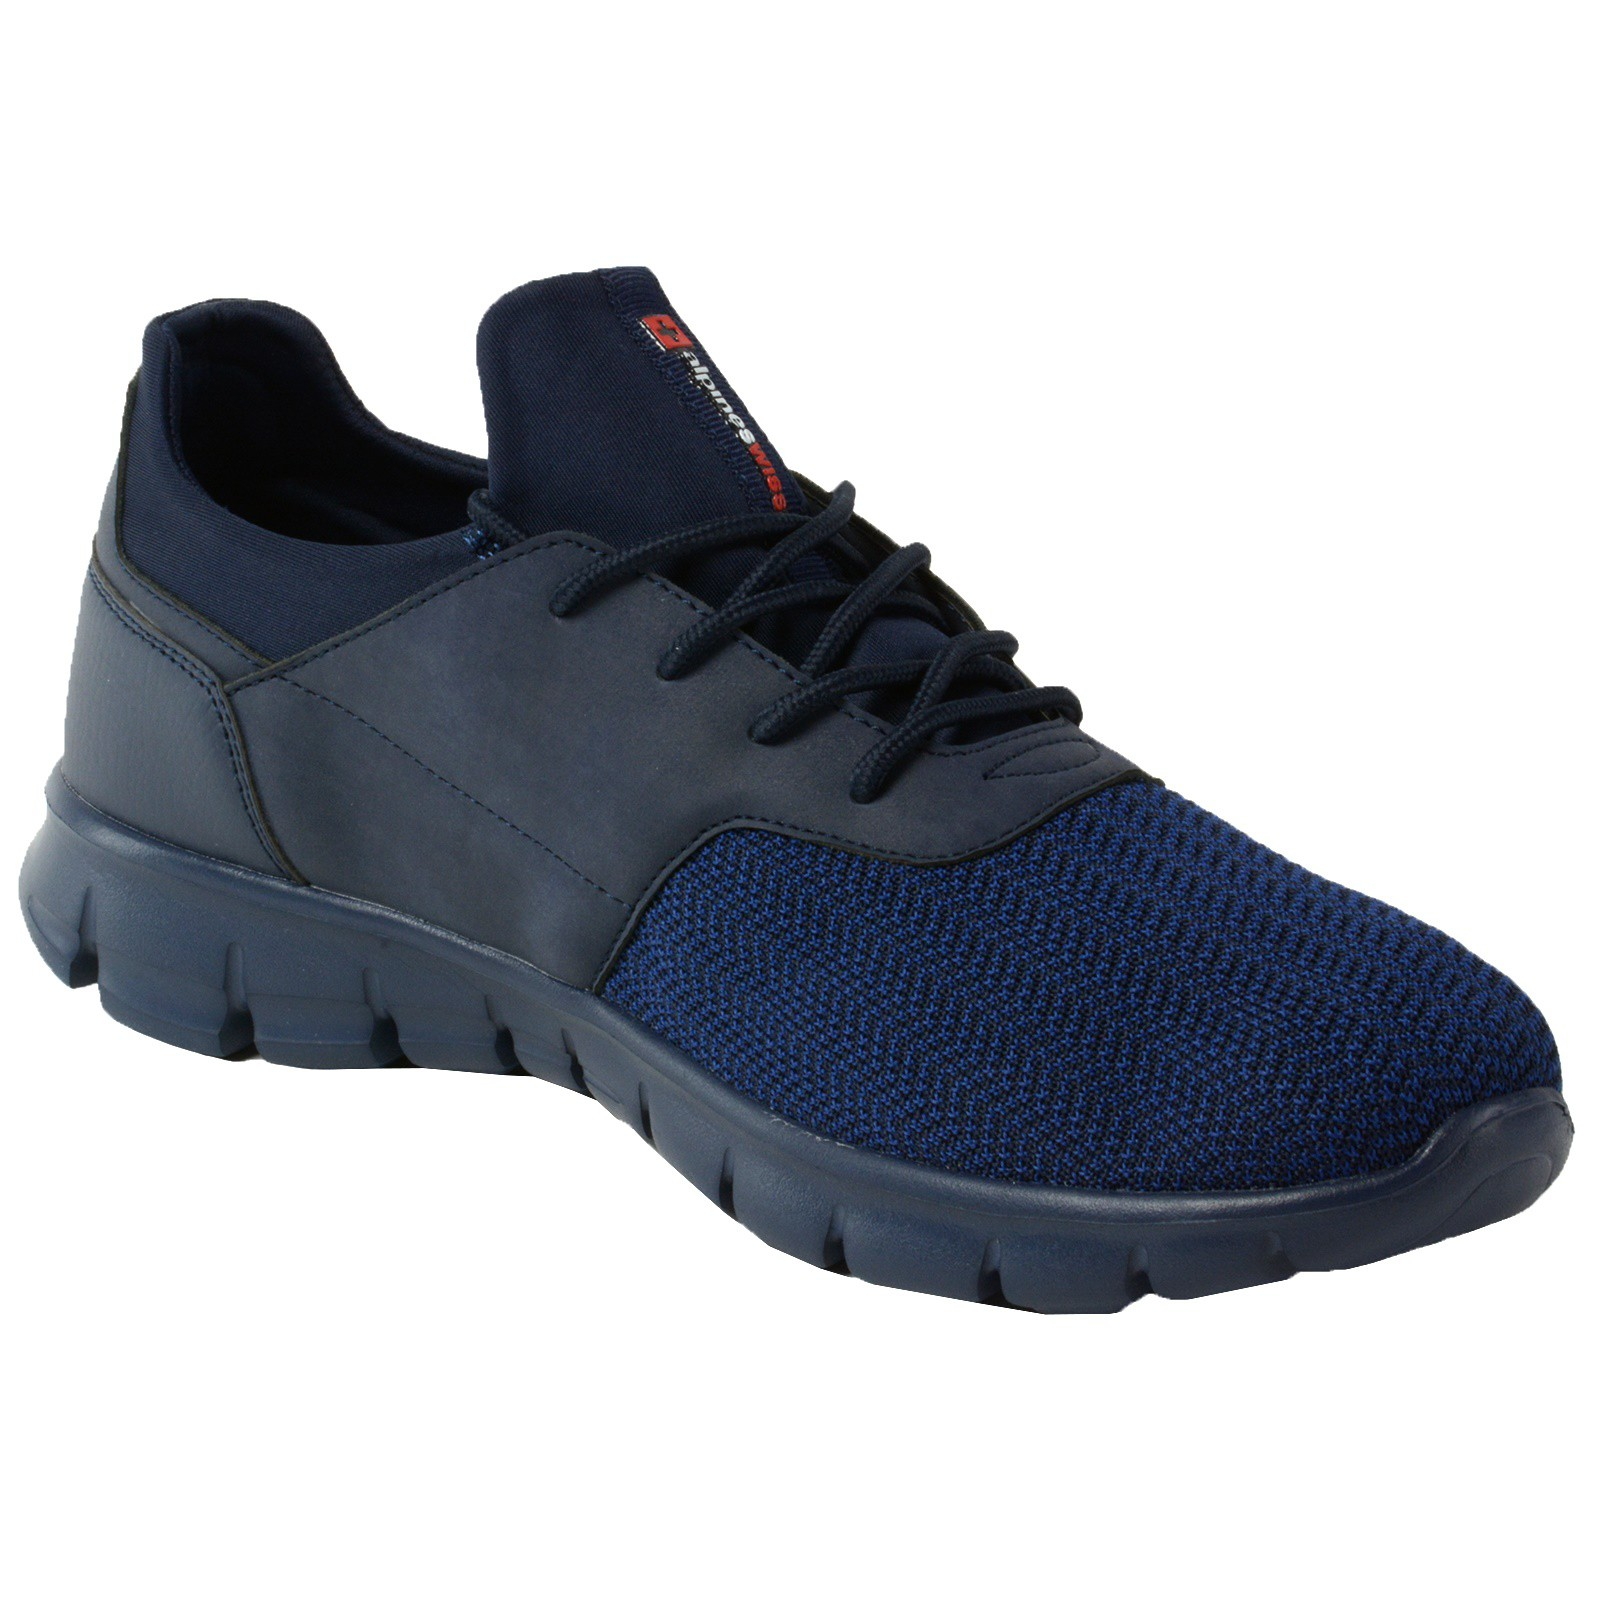 Alpine-Swiss-Leo-Men-Sneakers-Flex-Knit-Tennis-Shoes-Casual-Athletic-Lightweight thumbnail 28